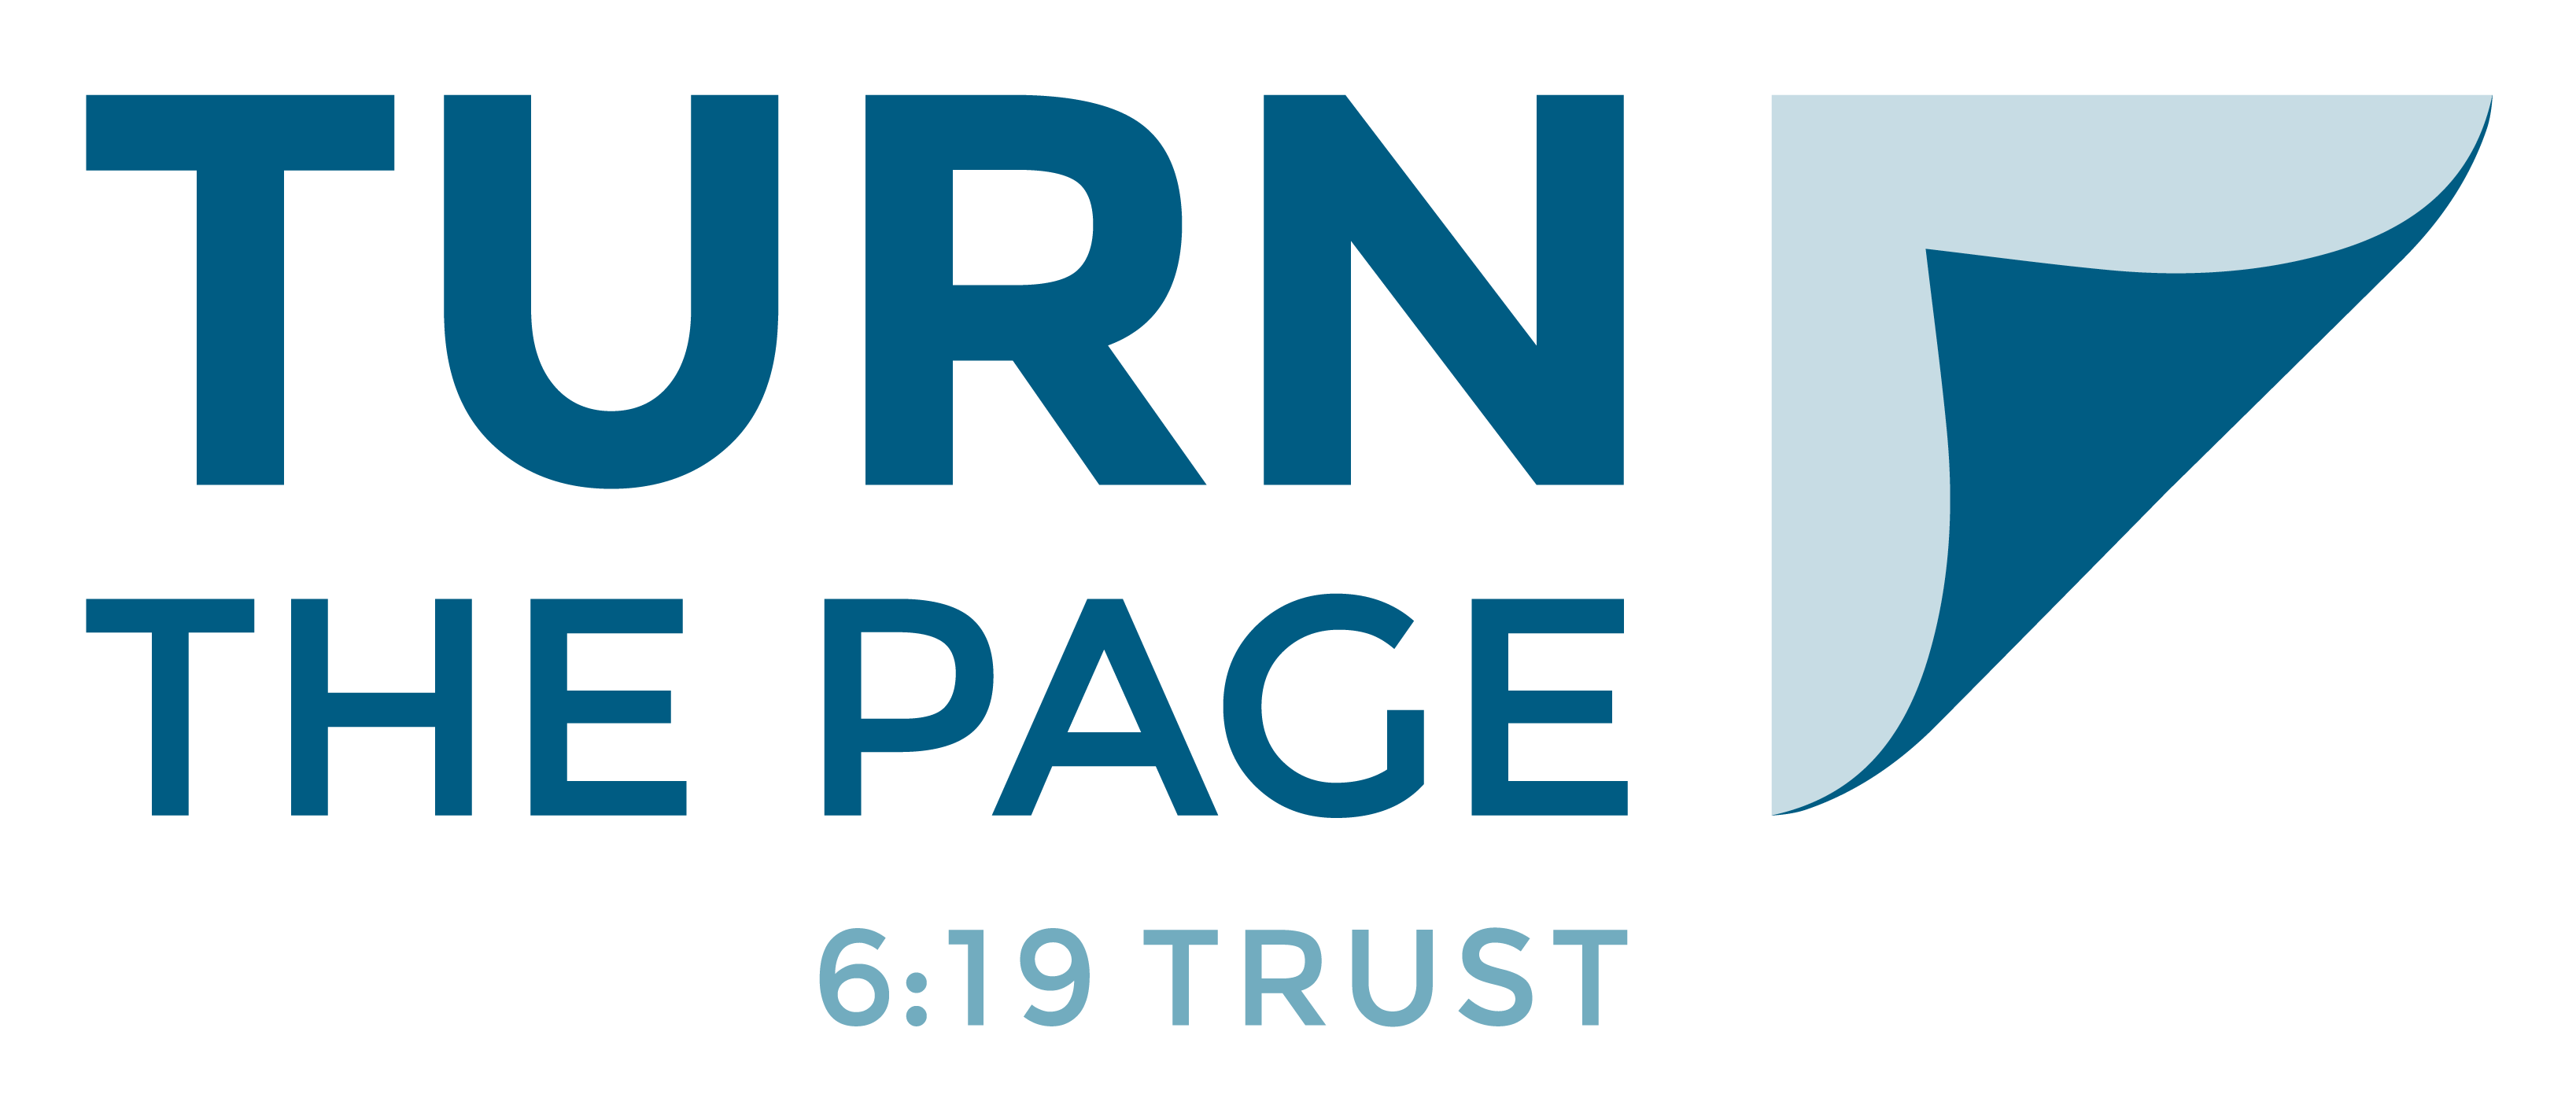 Turn The Page Png - Page Turn Png images collection for free download | llumac.cat